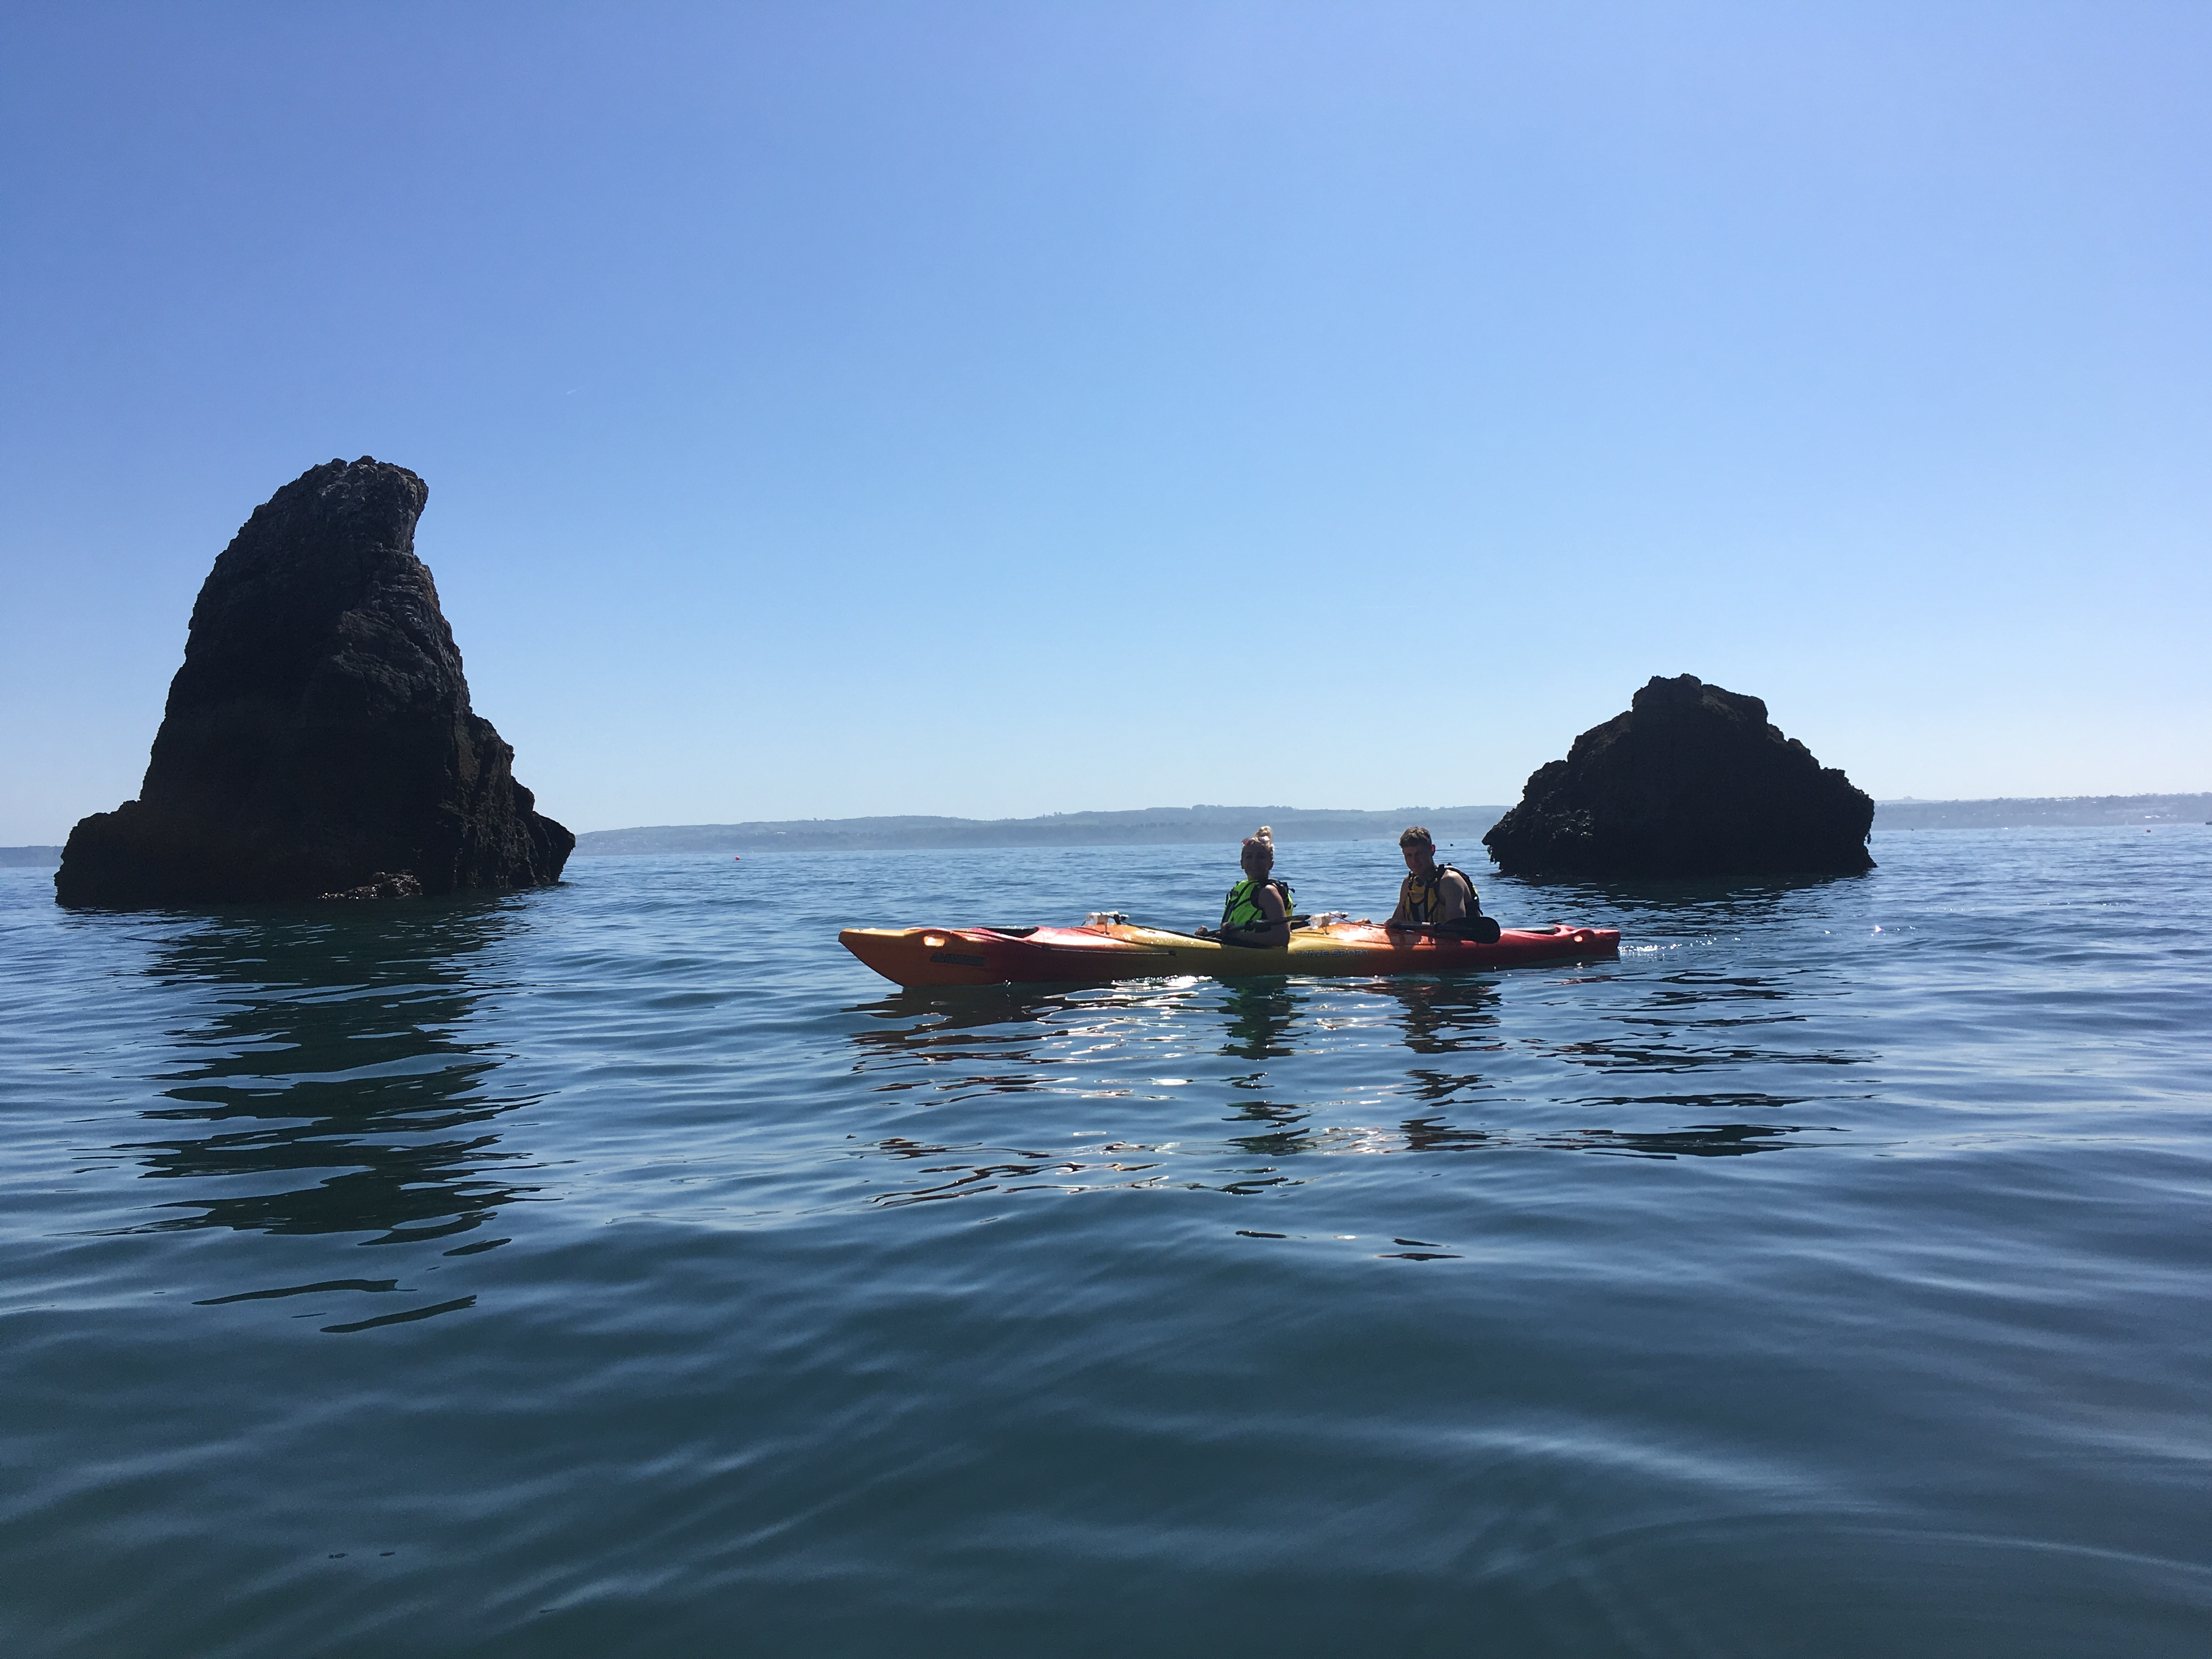 Sea Kayaking around Shag Rock, Torquay